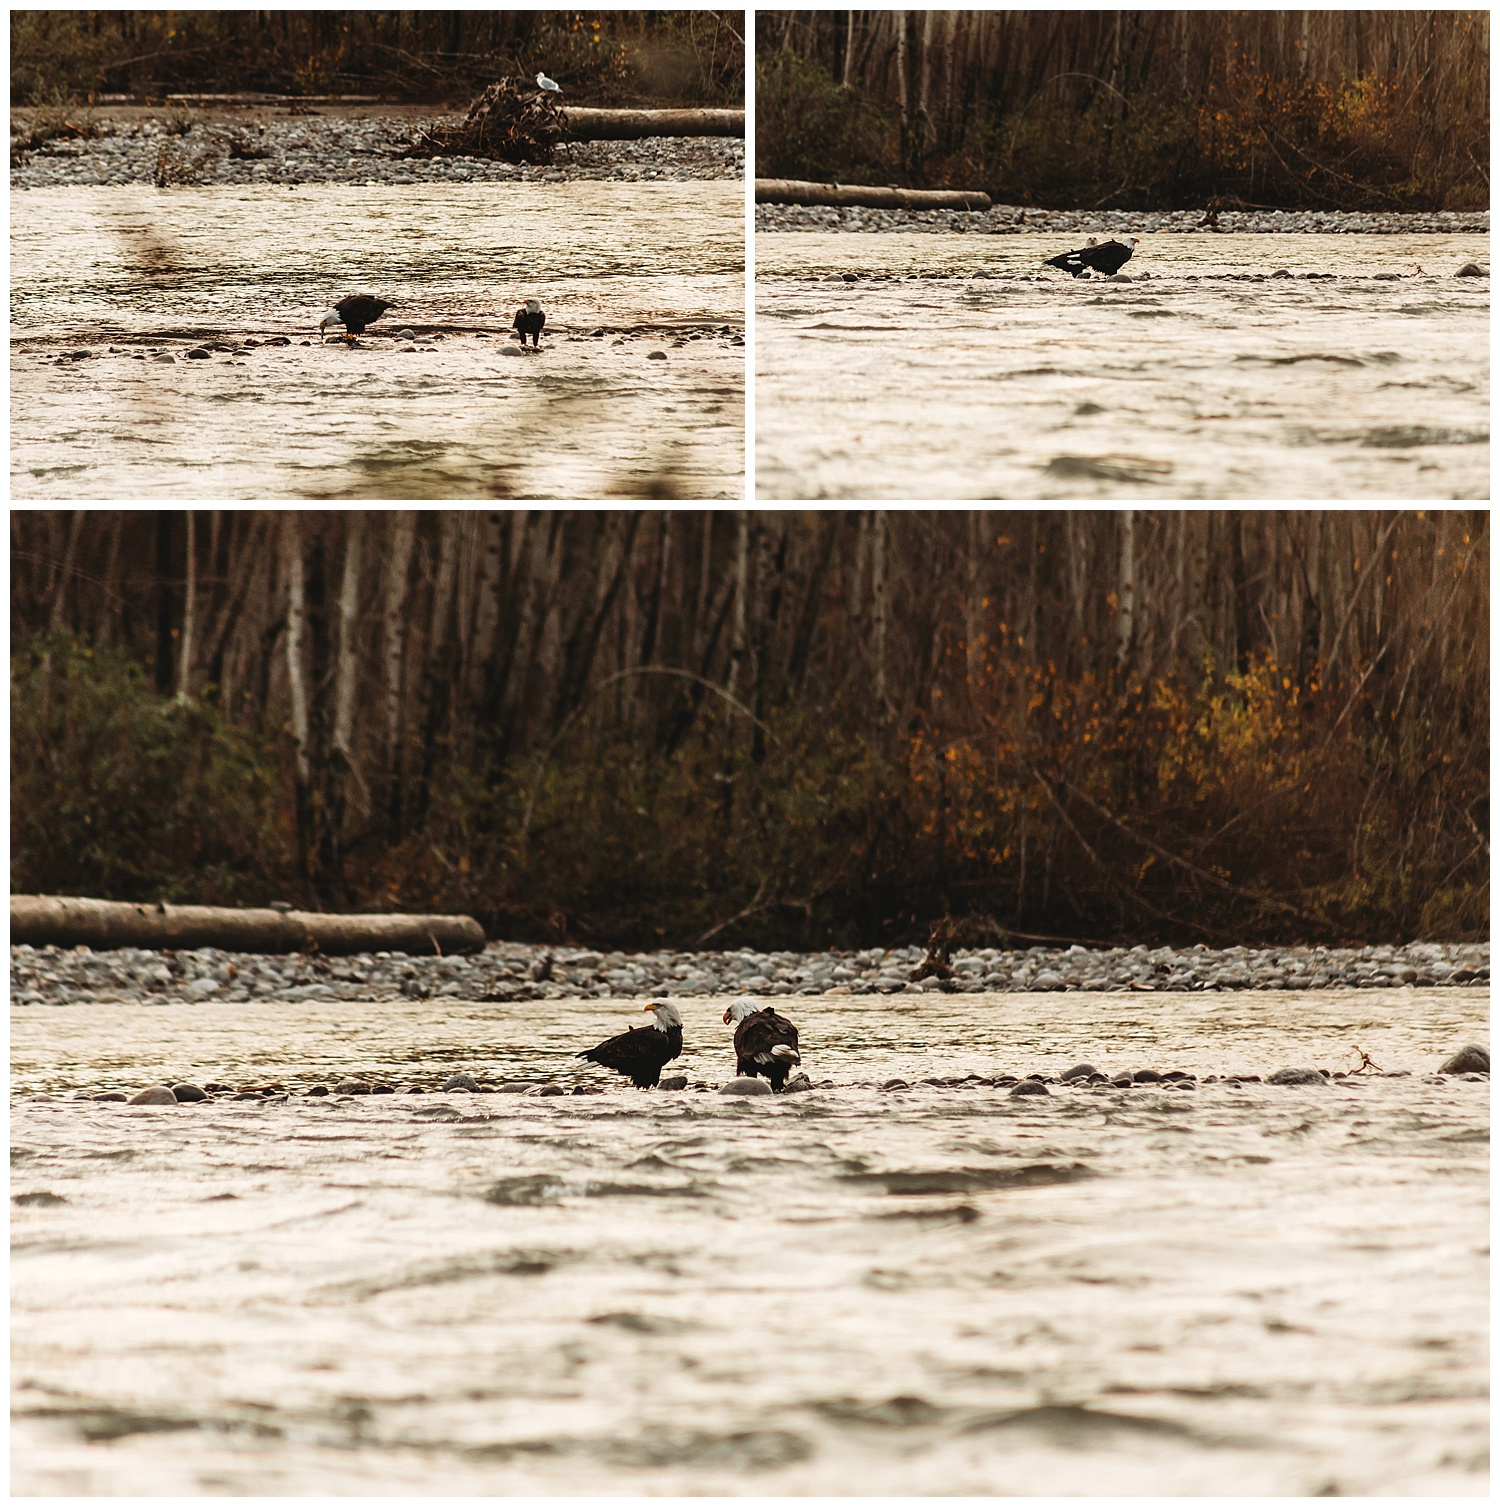 Eagles Vedder River Chilliwack 14.jpg